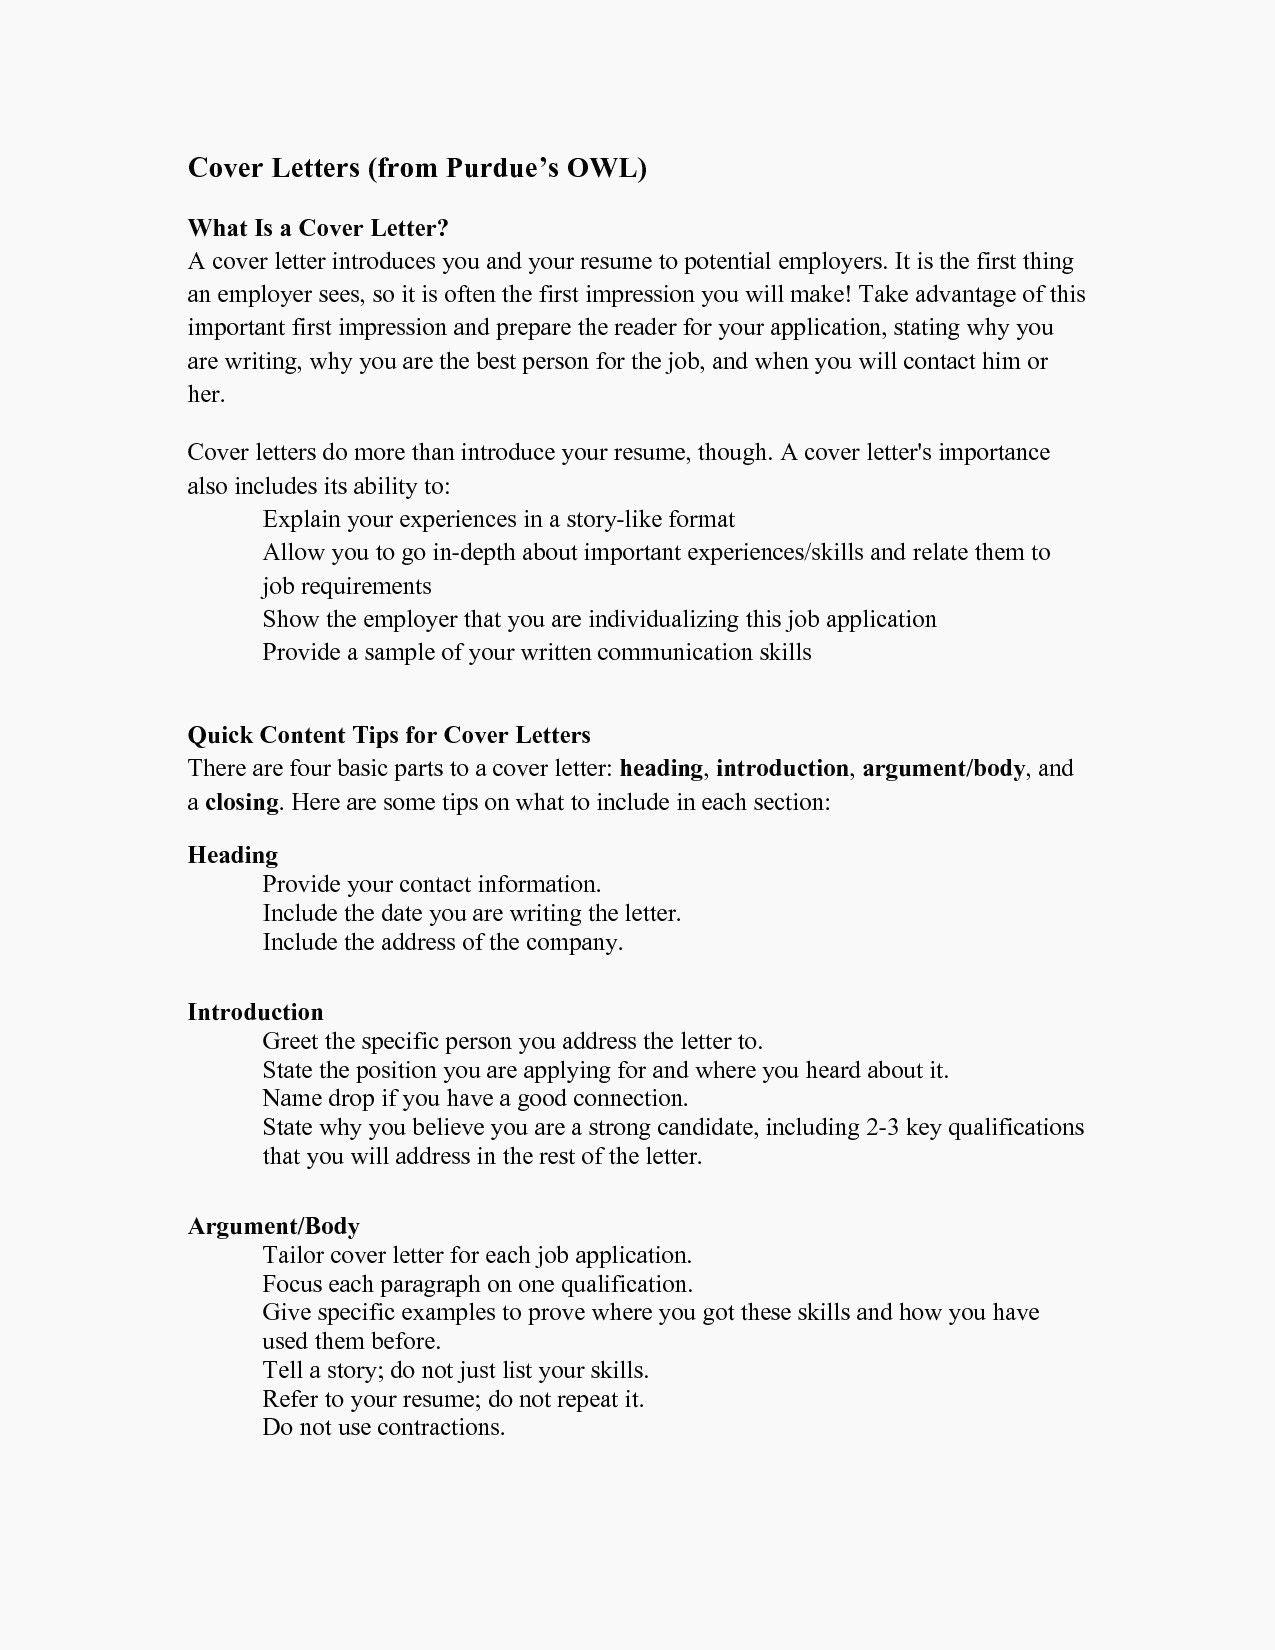 resume format purdue owl templates writing cover letter template millennial full charge Resume Resume Format Purdue Owl